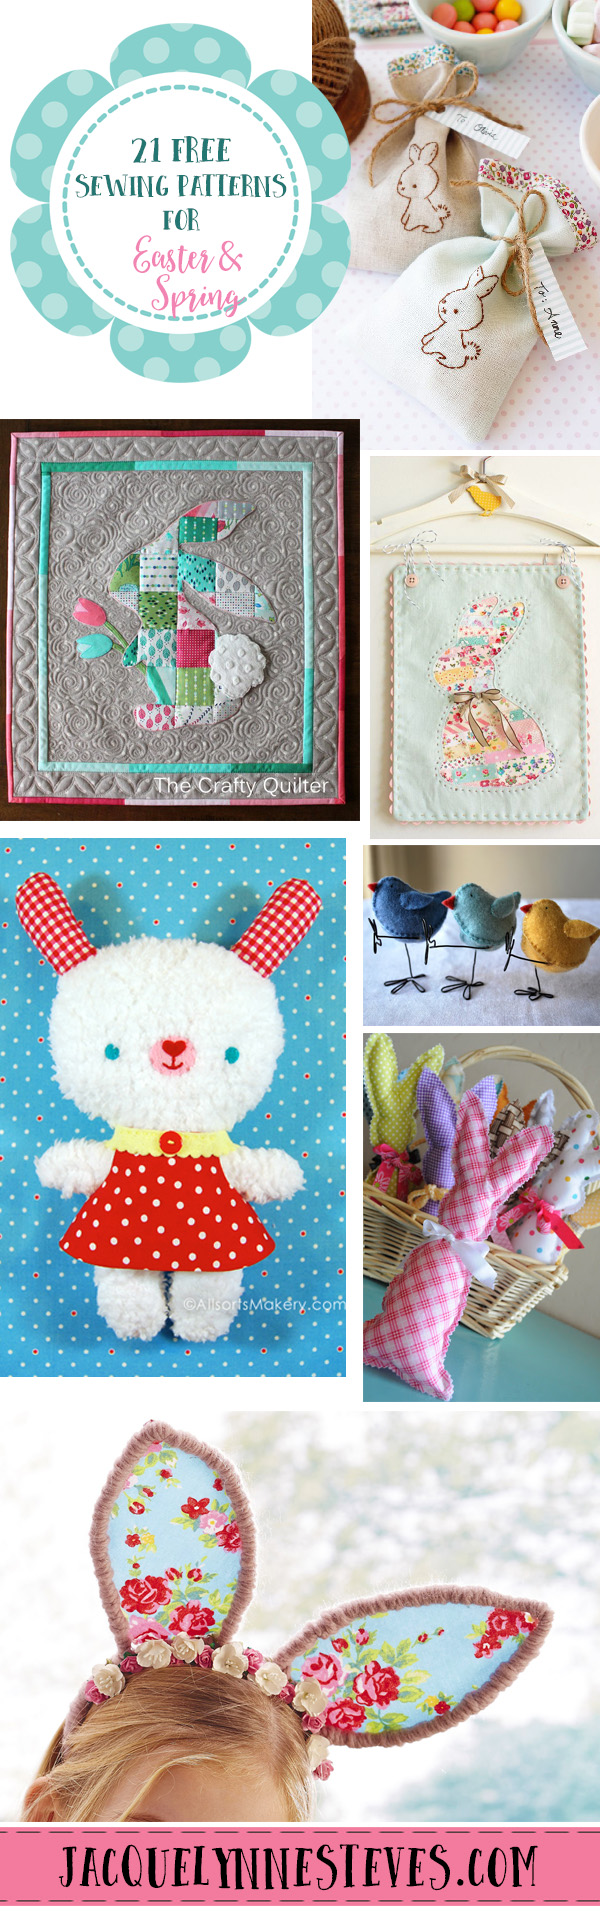 21 Free Sewing Patterns For Easter Amp Spring Jacquelynne